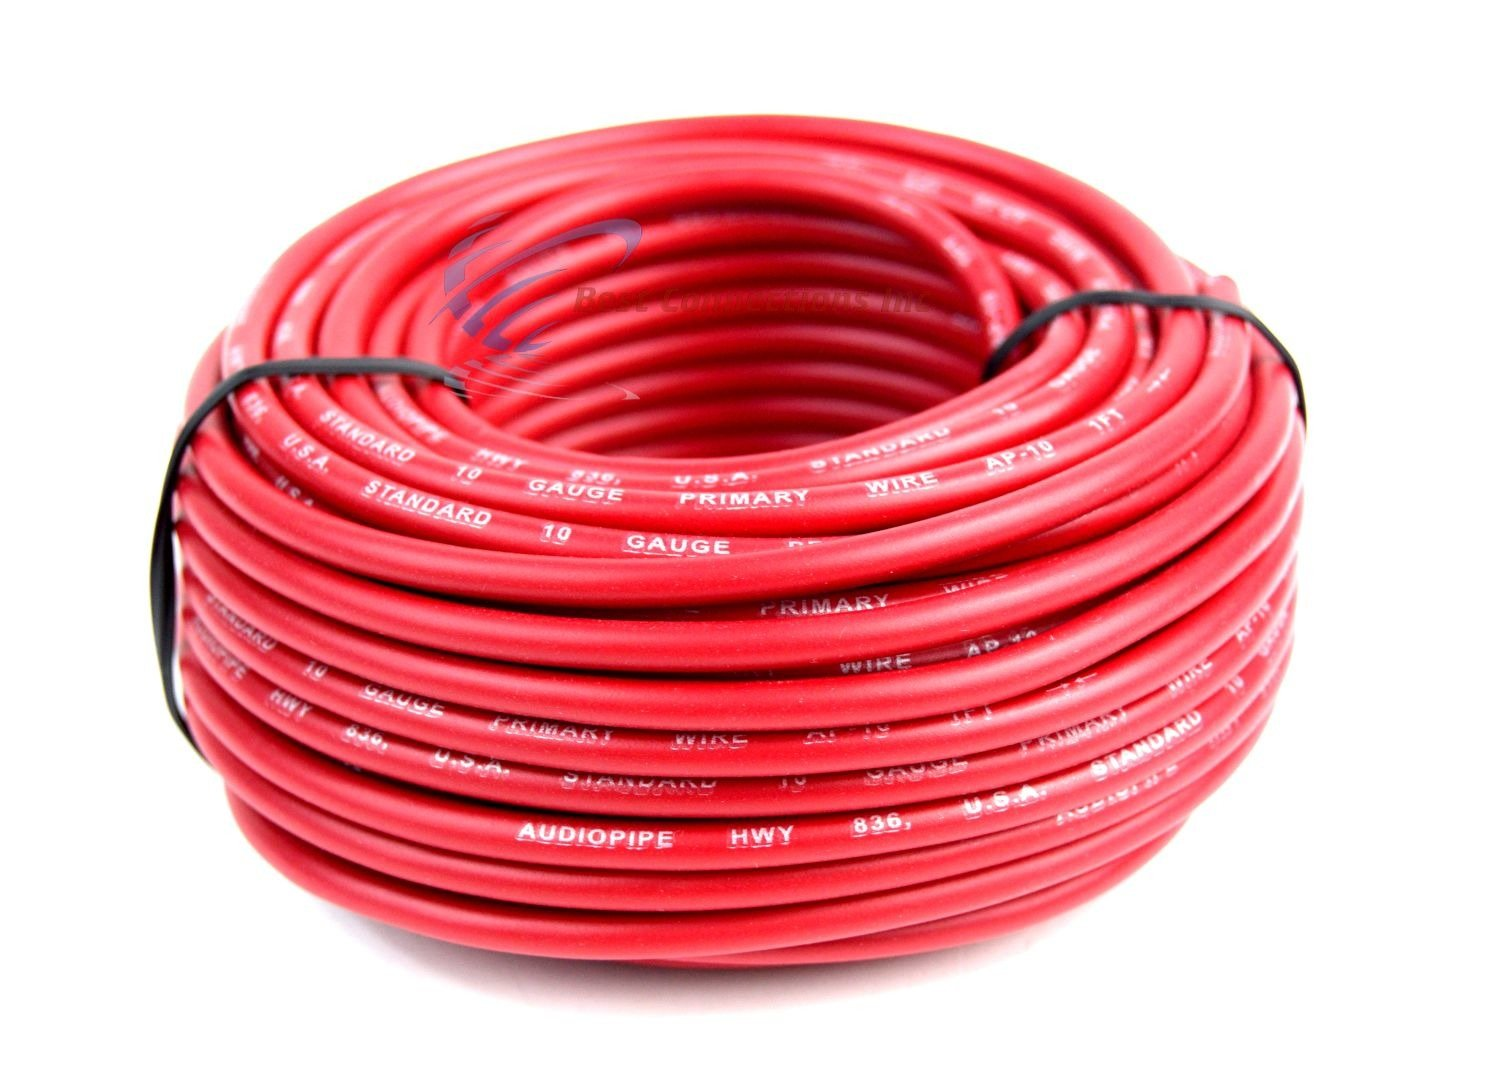 10 Gauge Wire Red Black Power Ground 50 Ft Each Jacket Wiring Harness Primary Stranded Copper Clad Everything Else